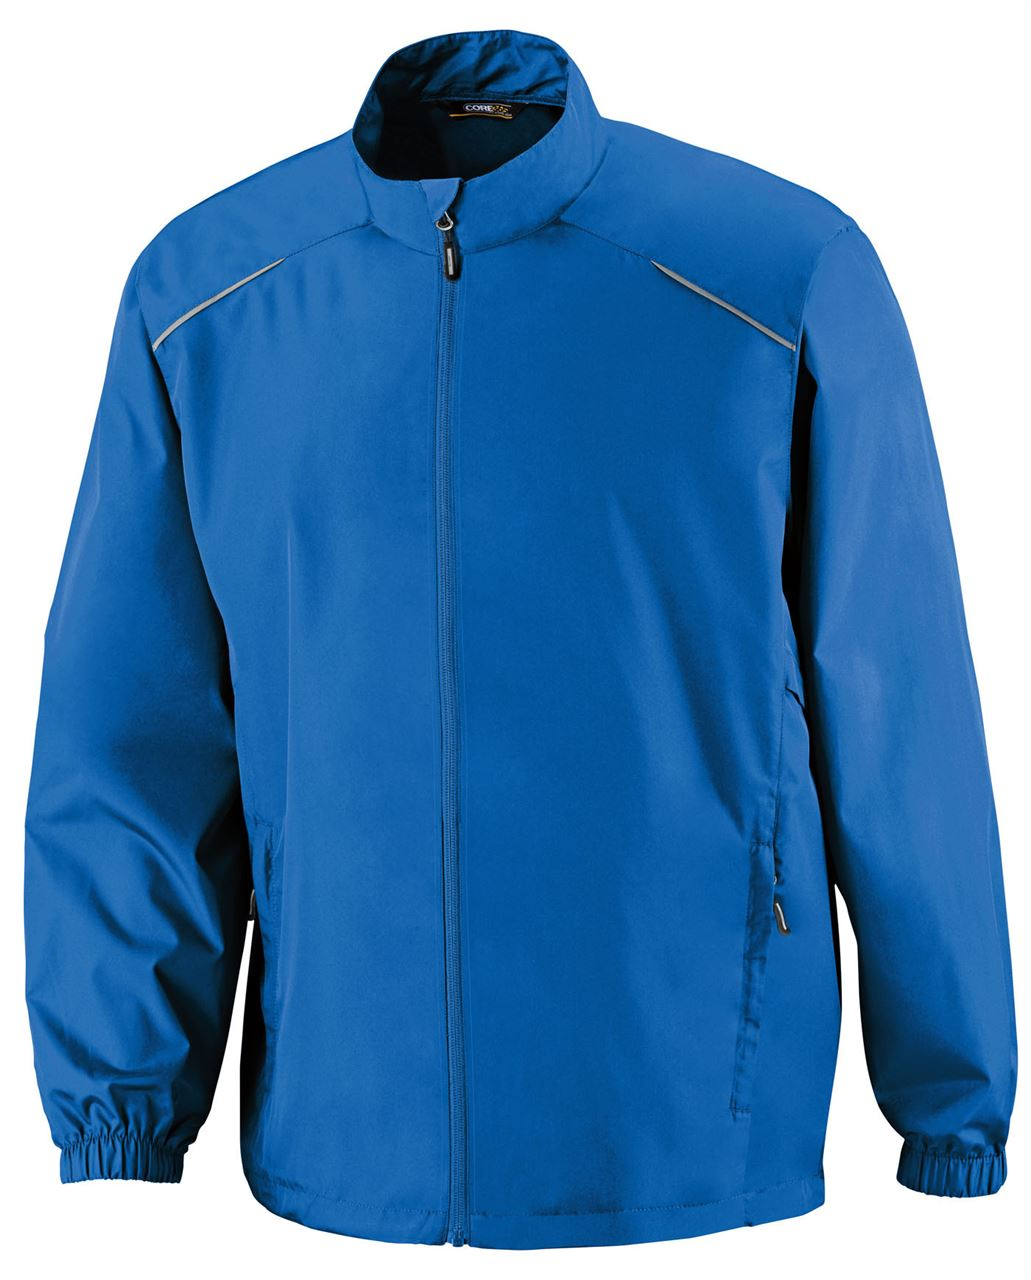 Picture of CORE365 Men's Unlined Lightweight Jacket